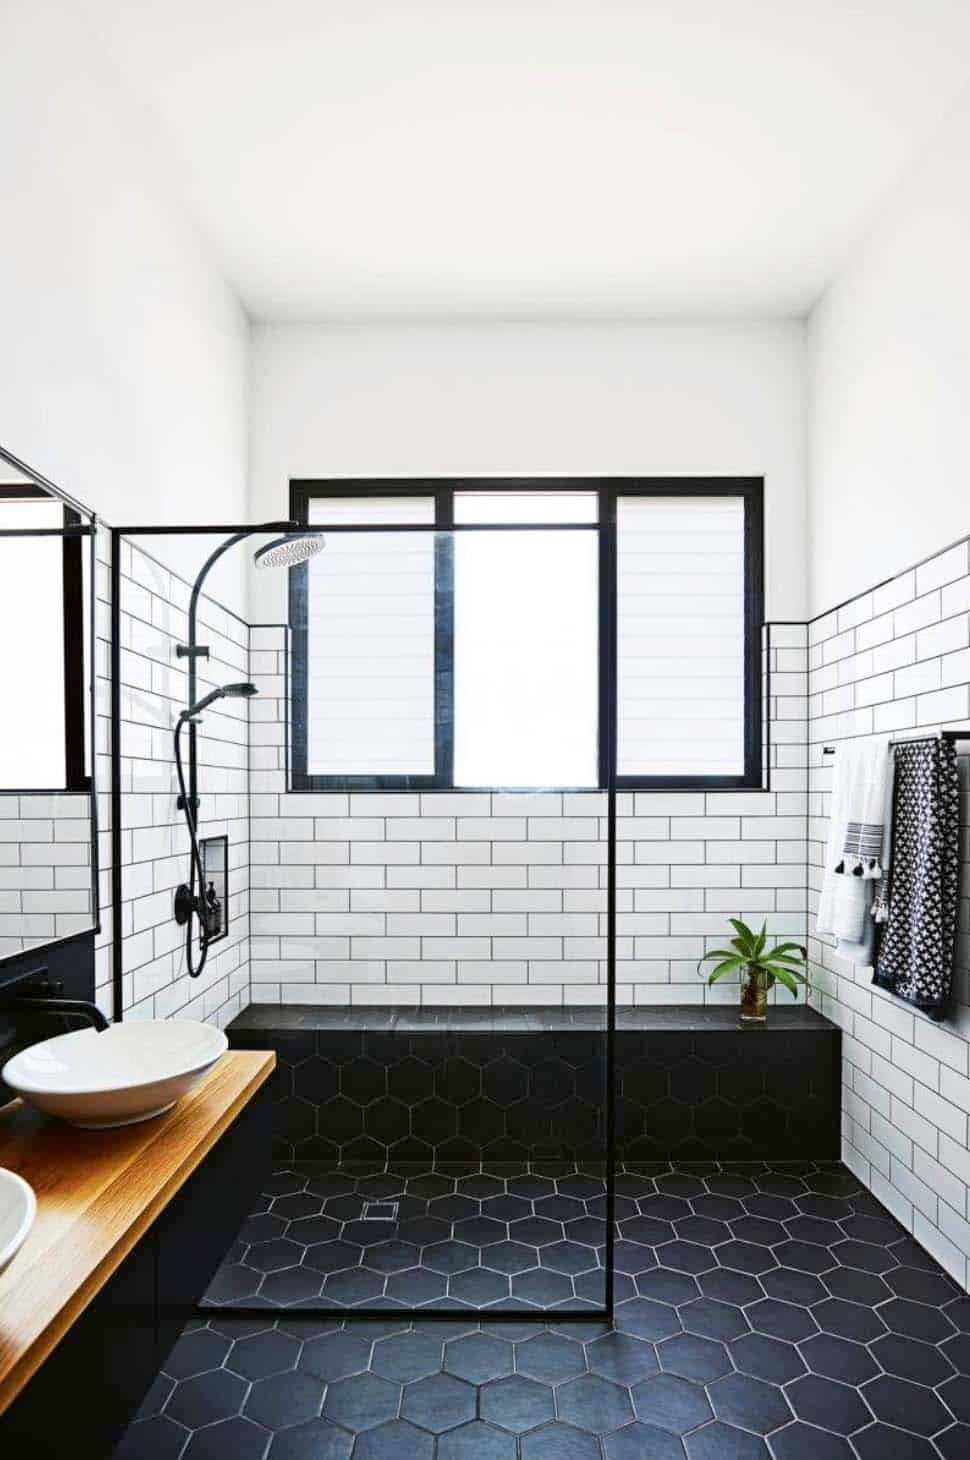 25 Incredibly Stylish Black And White Bathroom Ideas To Inspire Small Bathroom Remodel Bathrooms Remodel Bathroom Design